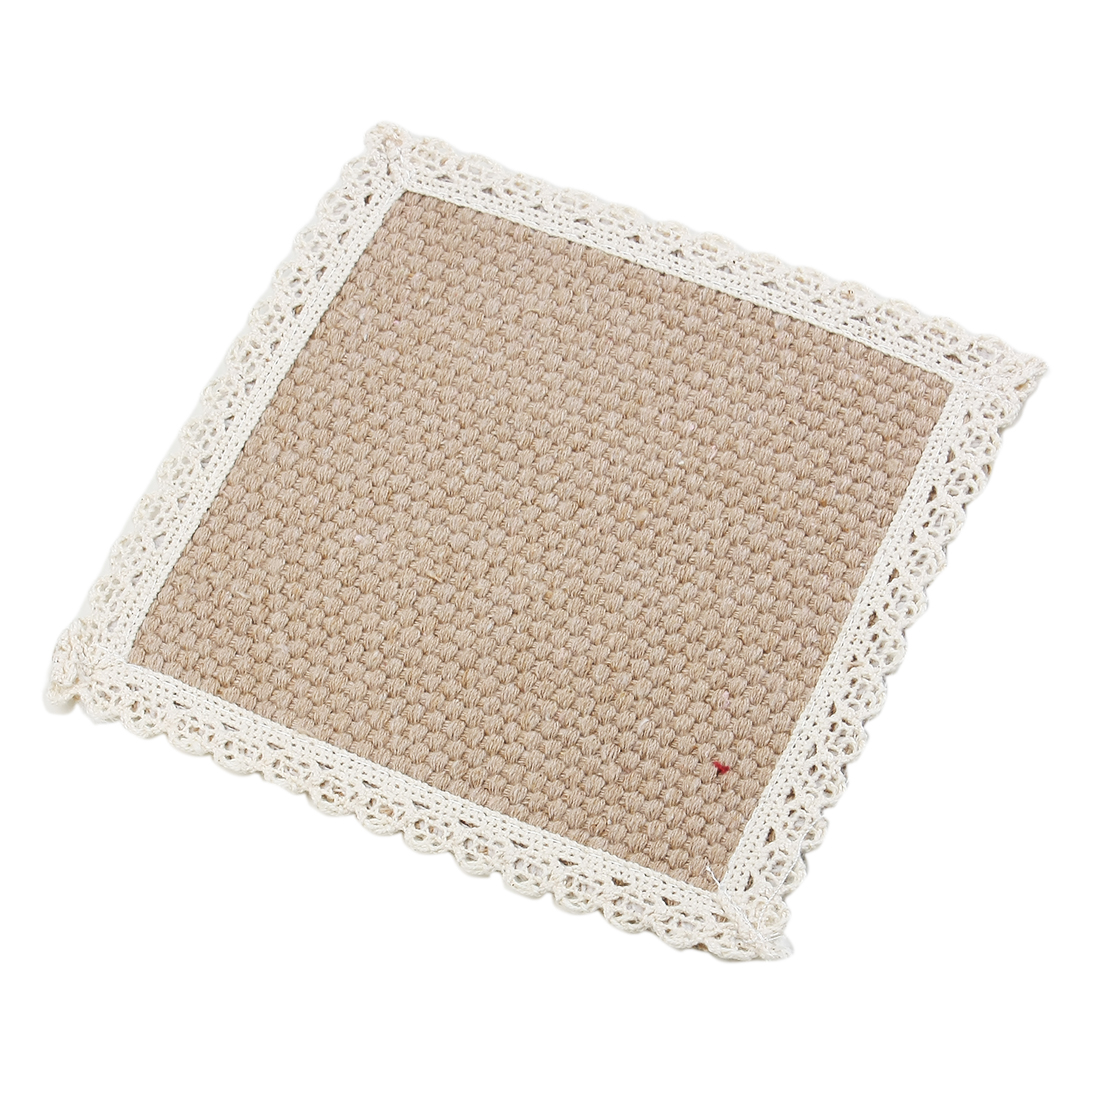 Cotton Heat Resistant Cup Mat Placemat Beige Light Brown 15 x 15cm